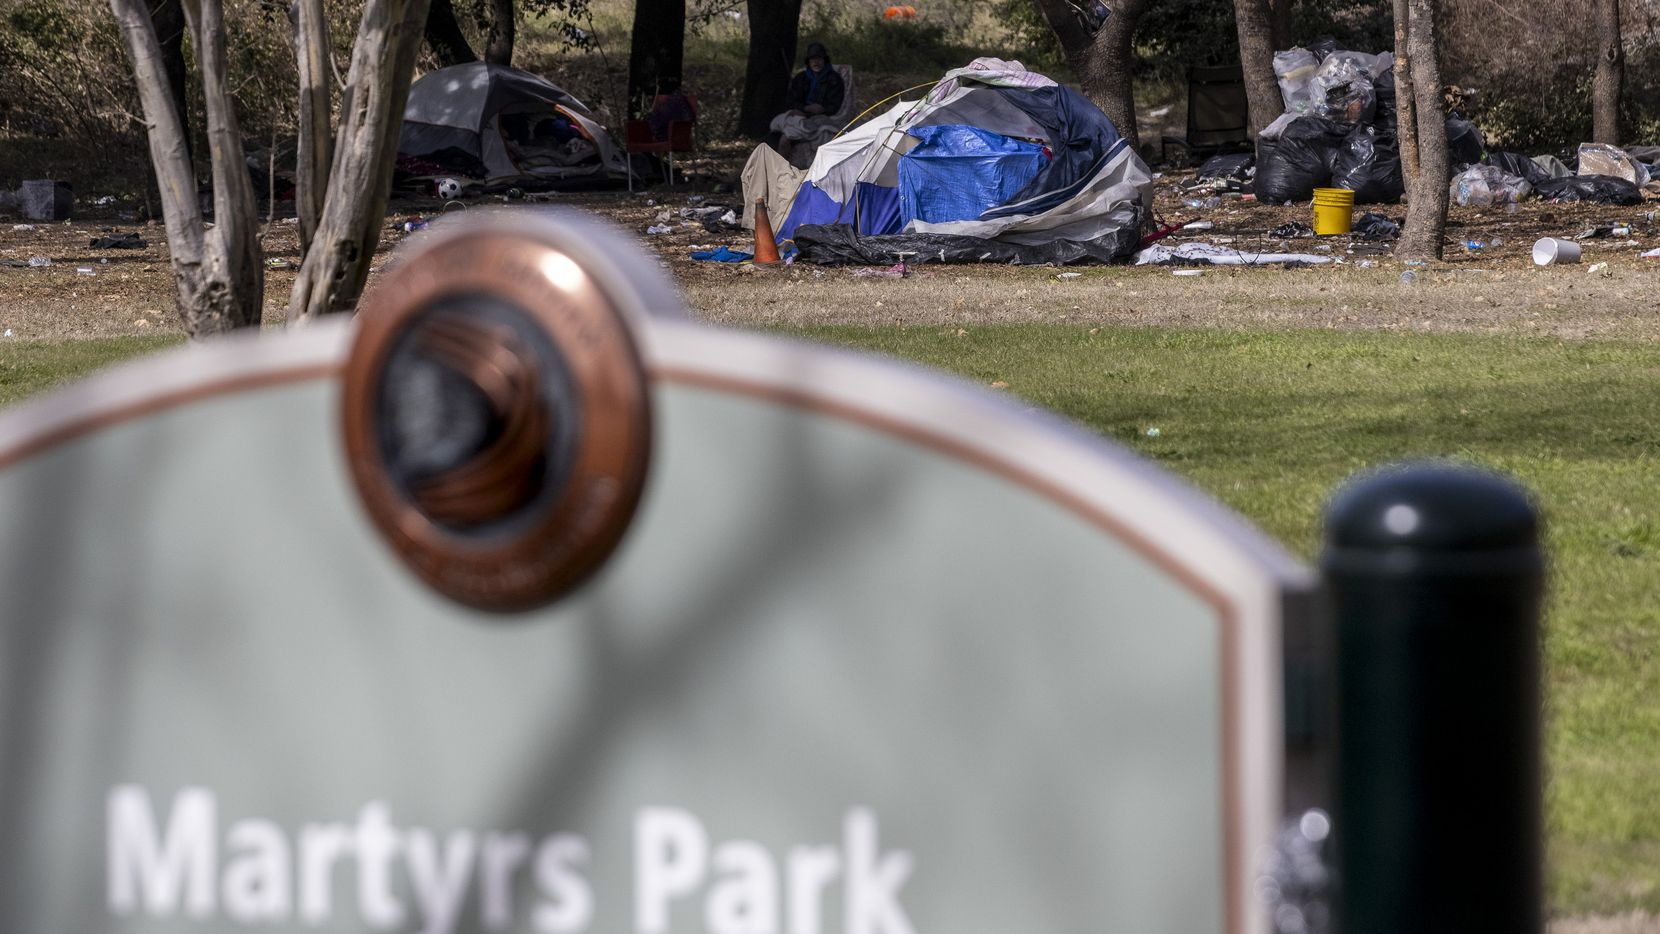 "Homelessness encampments at Martyrs Park in downtown Dallas on Feb. 2, 2021. Dr. George Keaton, the head of Remembering Black Dallas, has been a leading voice in the effort to commemorate local victims of racial violence and feels strongly about putting the memorial in Martyrs Park. ""This particular park in my opinion has been redlined just like the communities we live in,"" Keaton said. ""When will [the city] un-redline Martyrs Park? That's what they need to understand."""